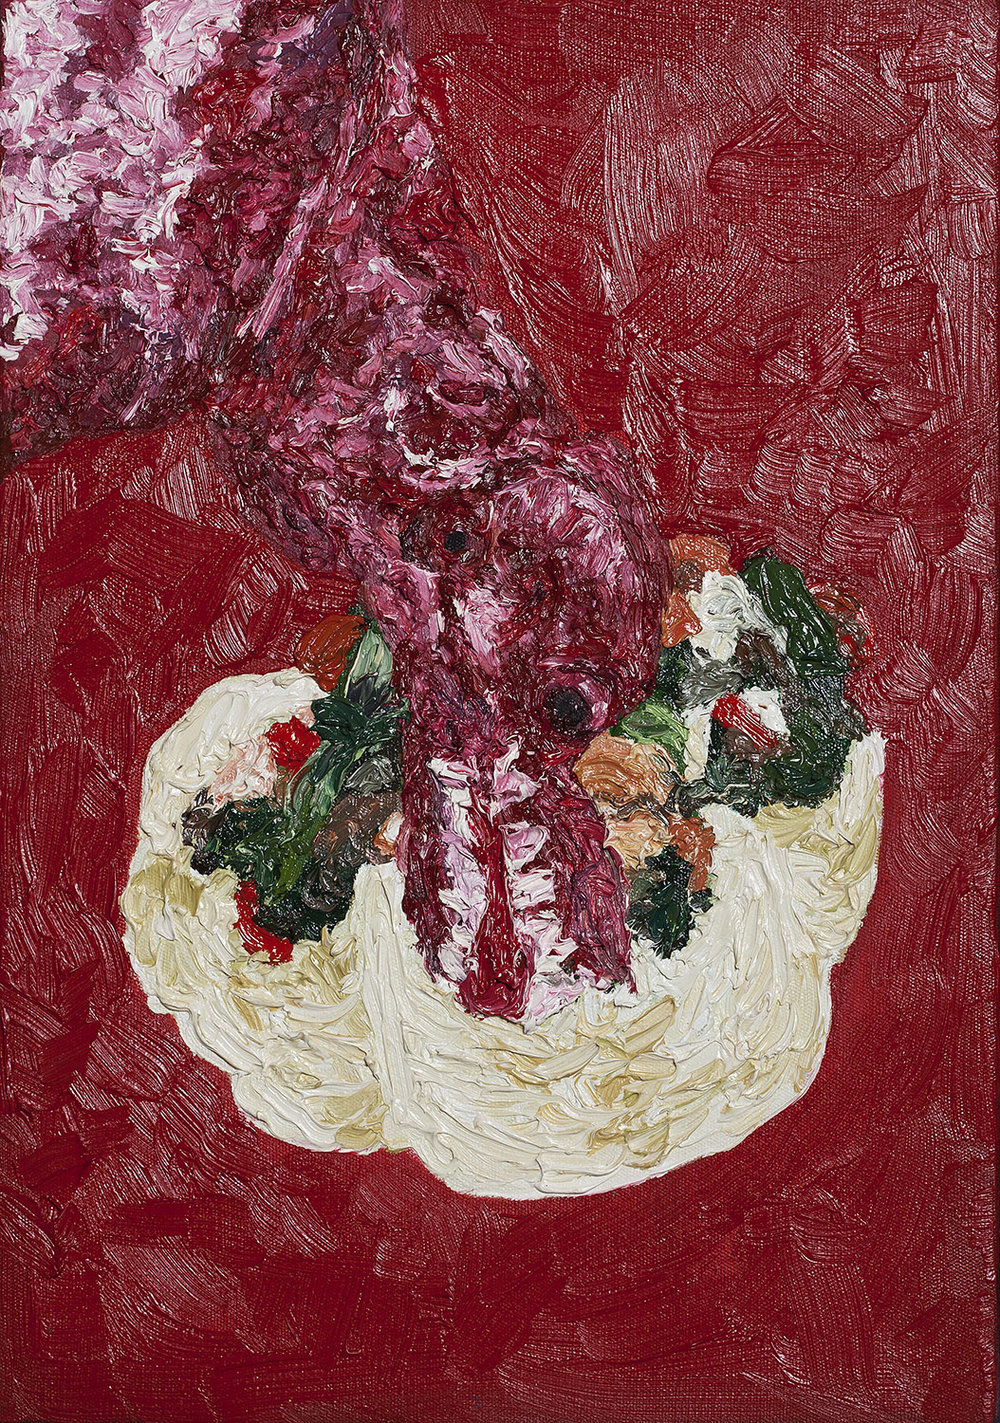 Dog Lettuce, 2014, Oil on canvas, 40x28cm, R5,000_1500.jpg